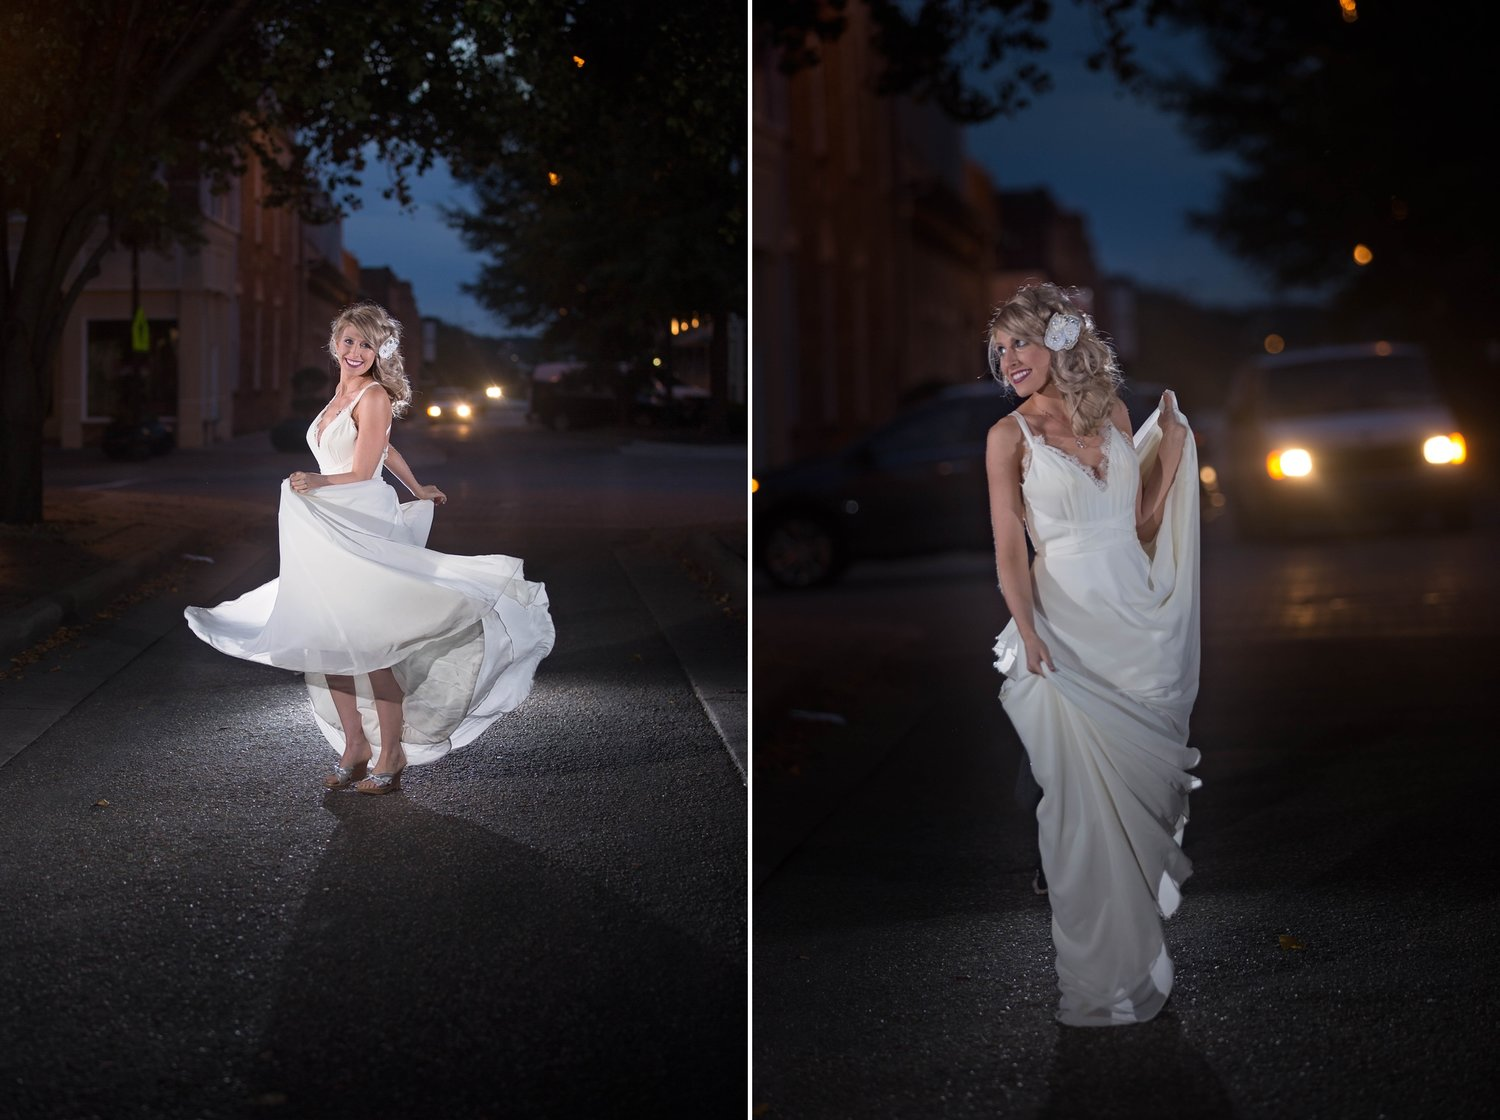 Wedding Portraits At Night In Downtown Fayetteville NC Using Speedlights OCF